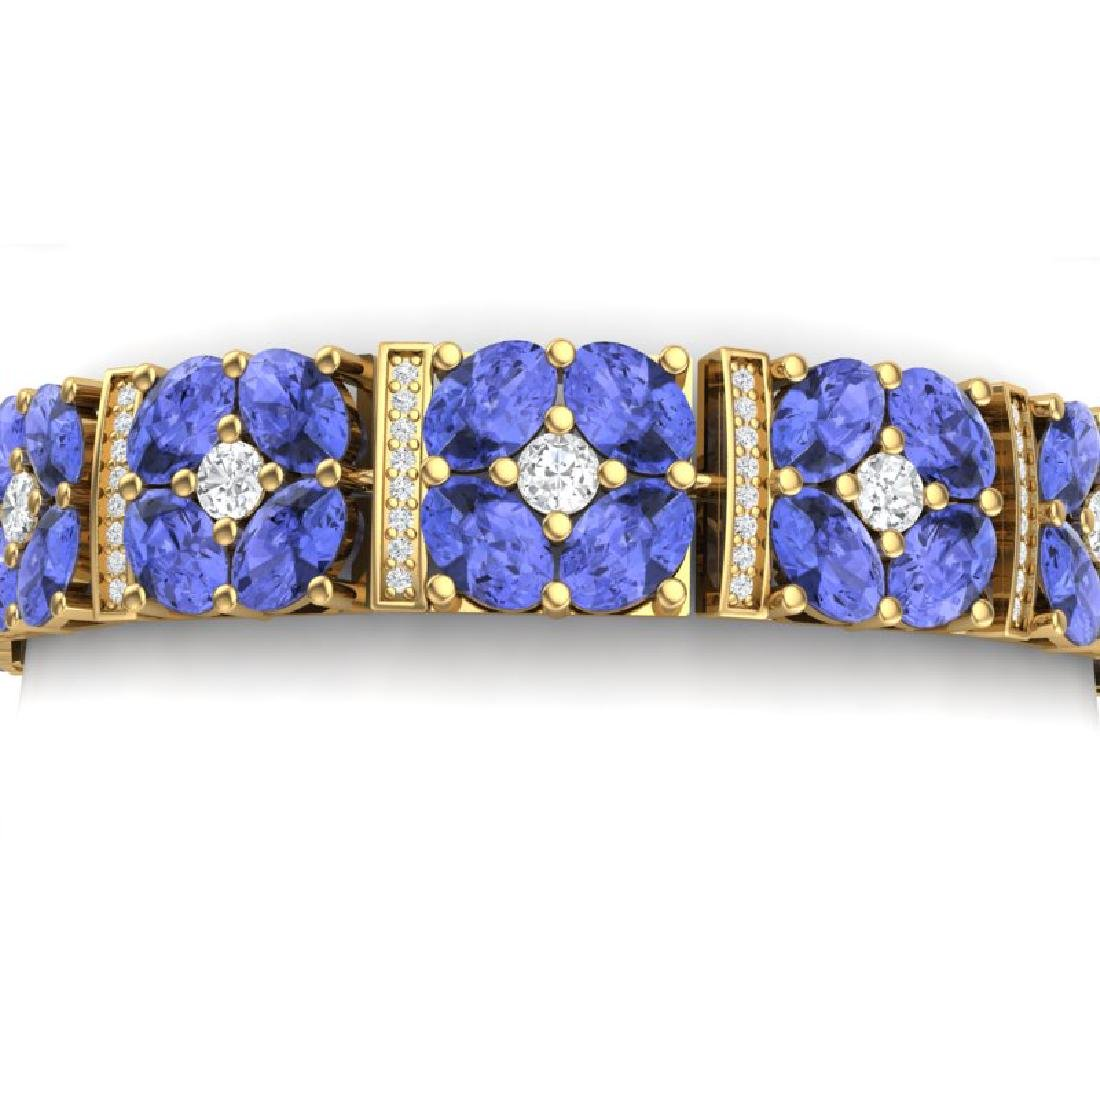 30.98 CTW Royalty Tanzanite & VS Diamond Bracelet 18K